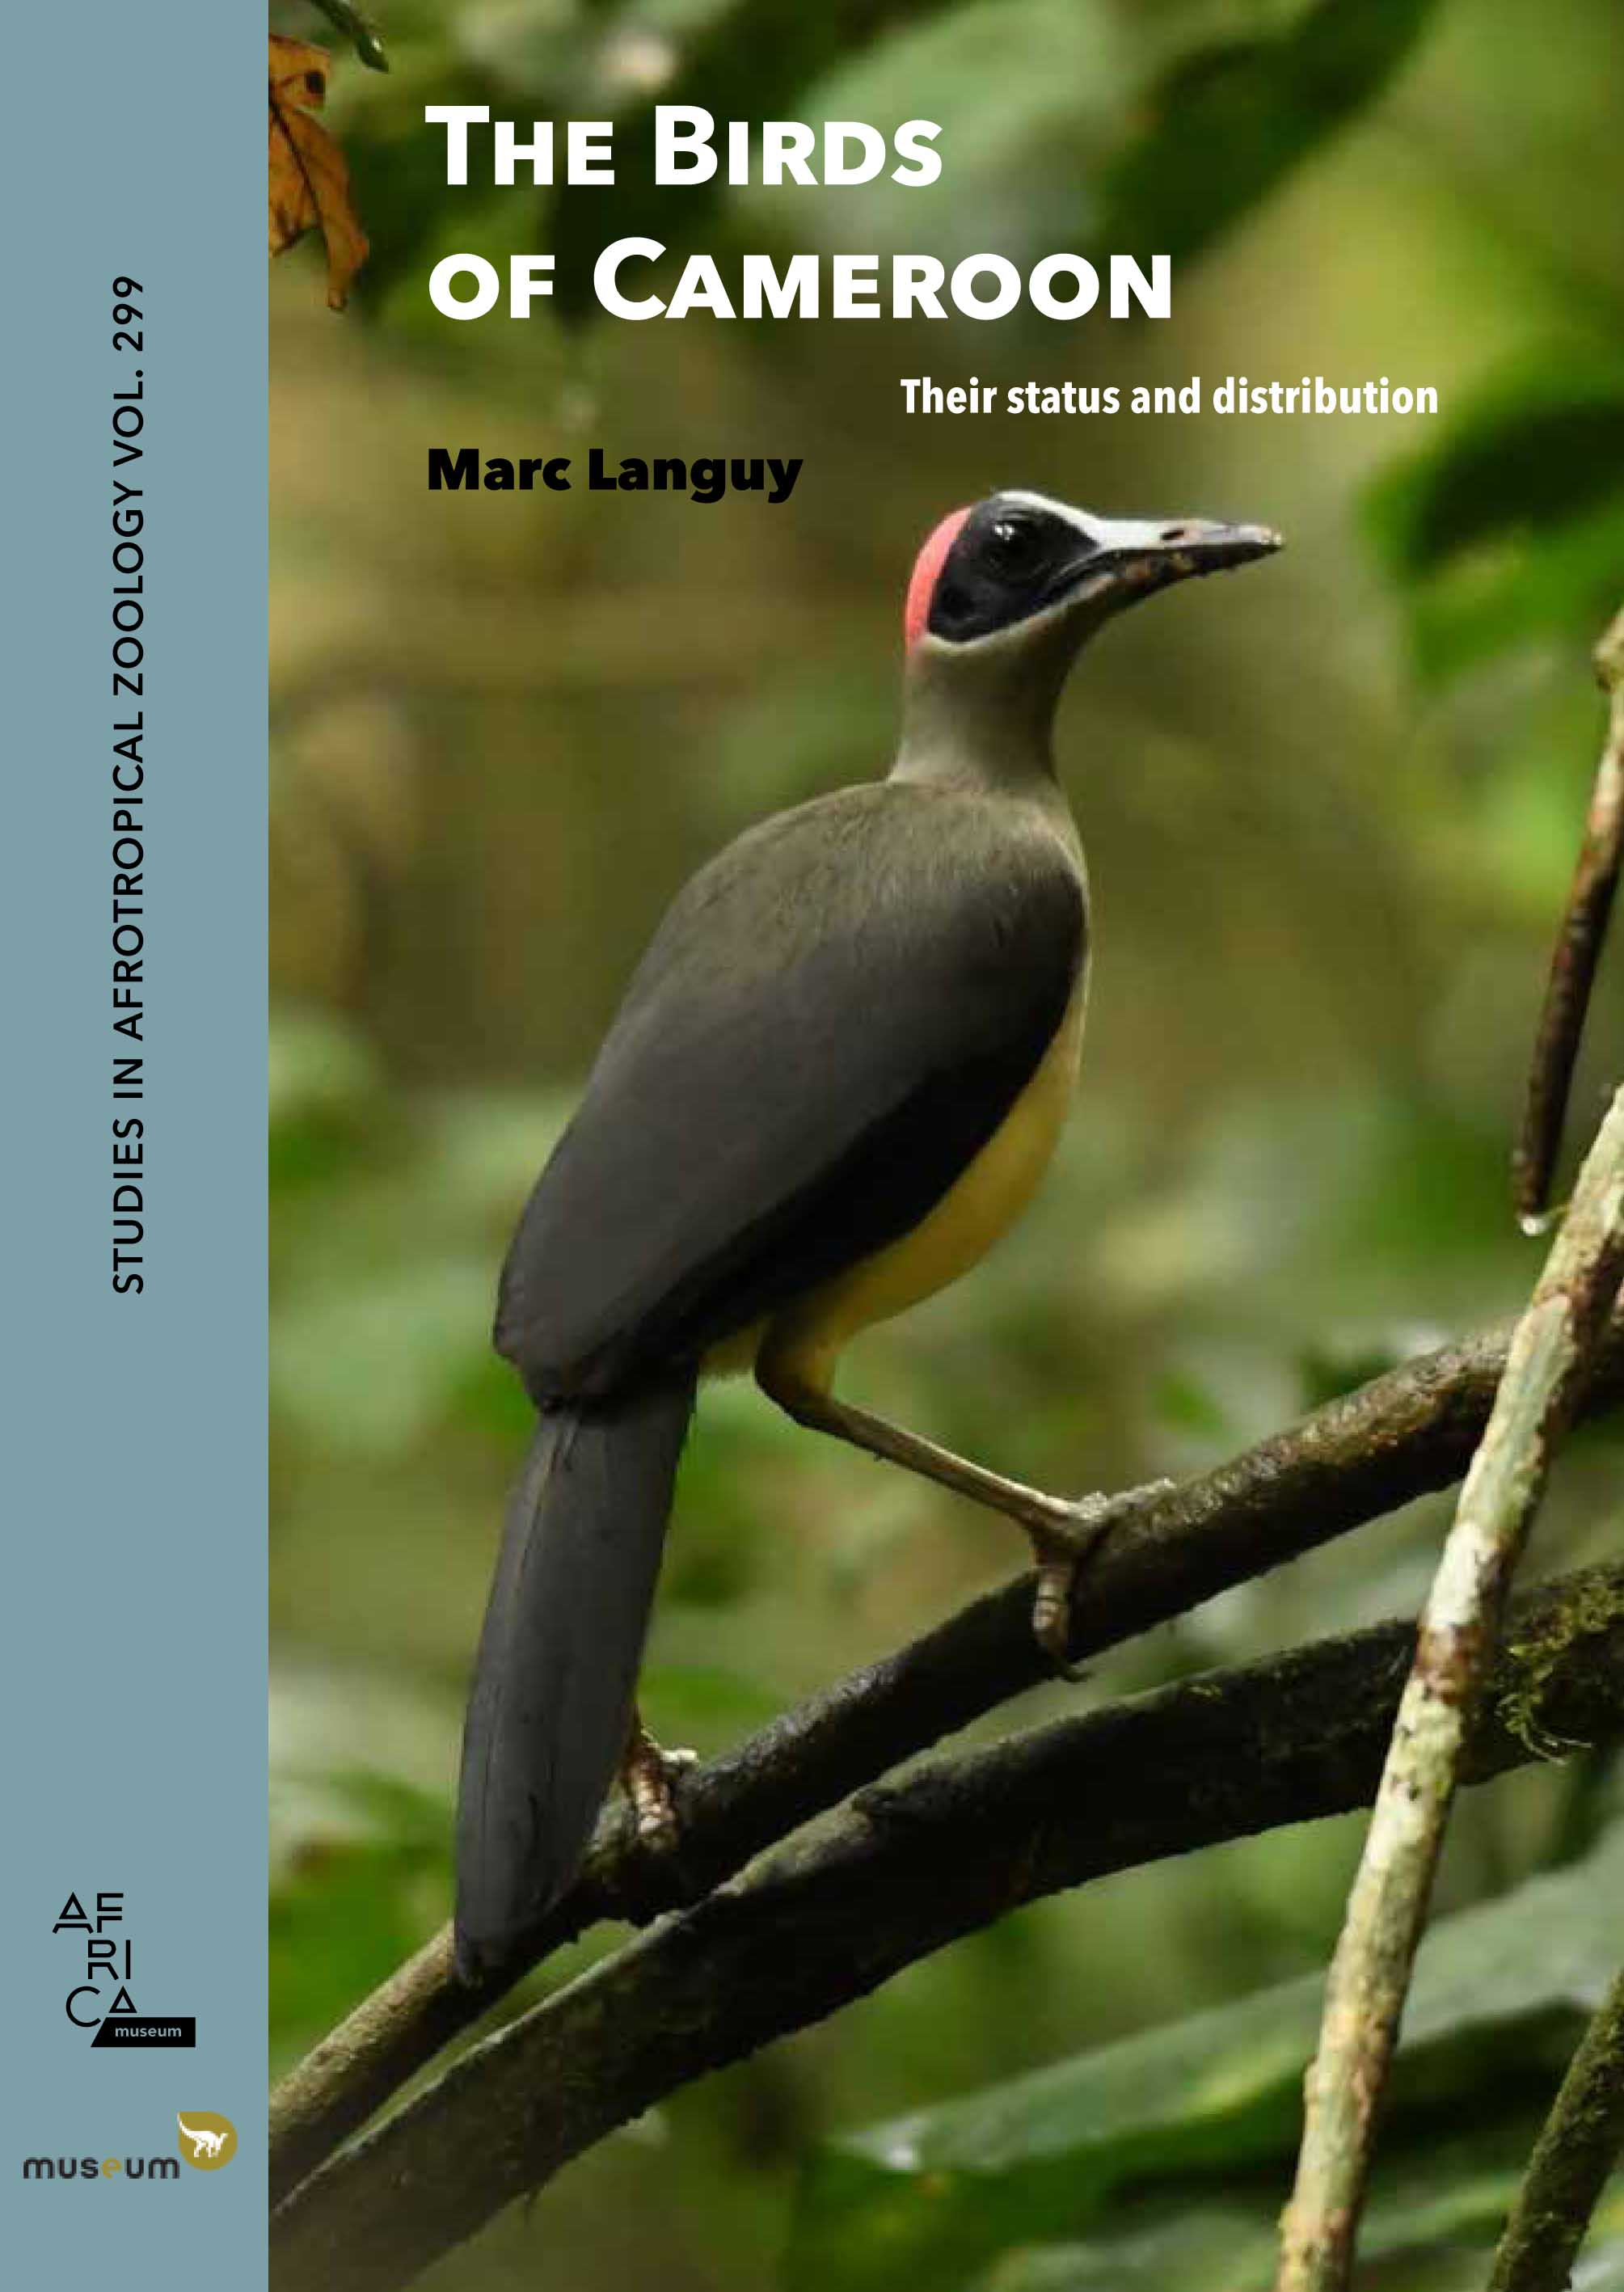 The Birds of Cameroon. Their status and distribution